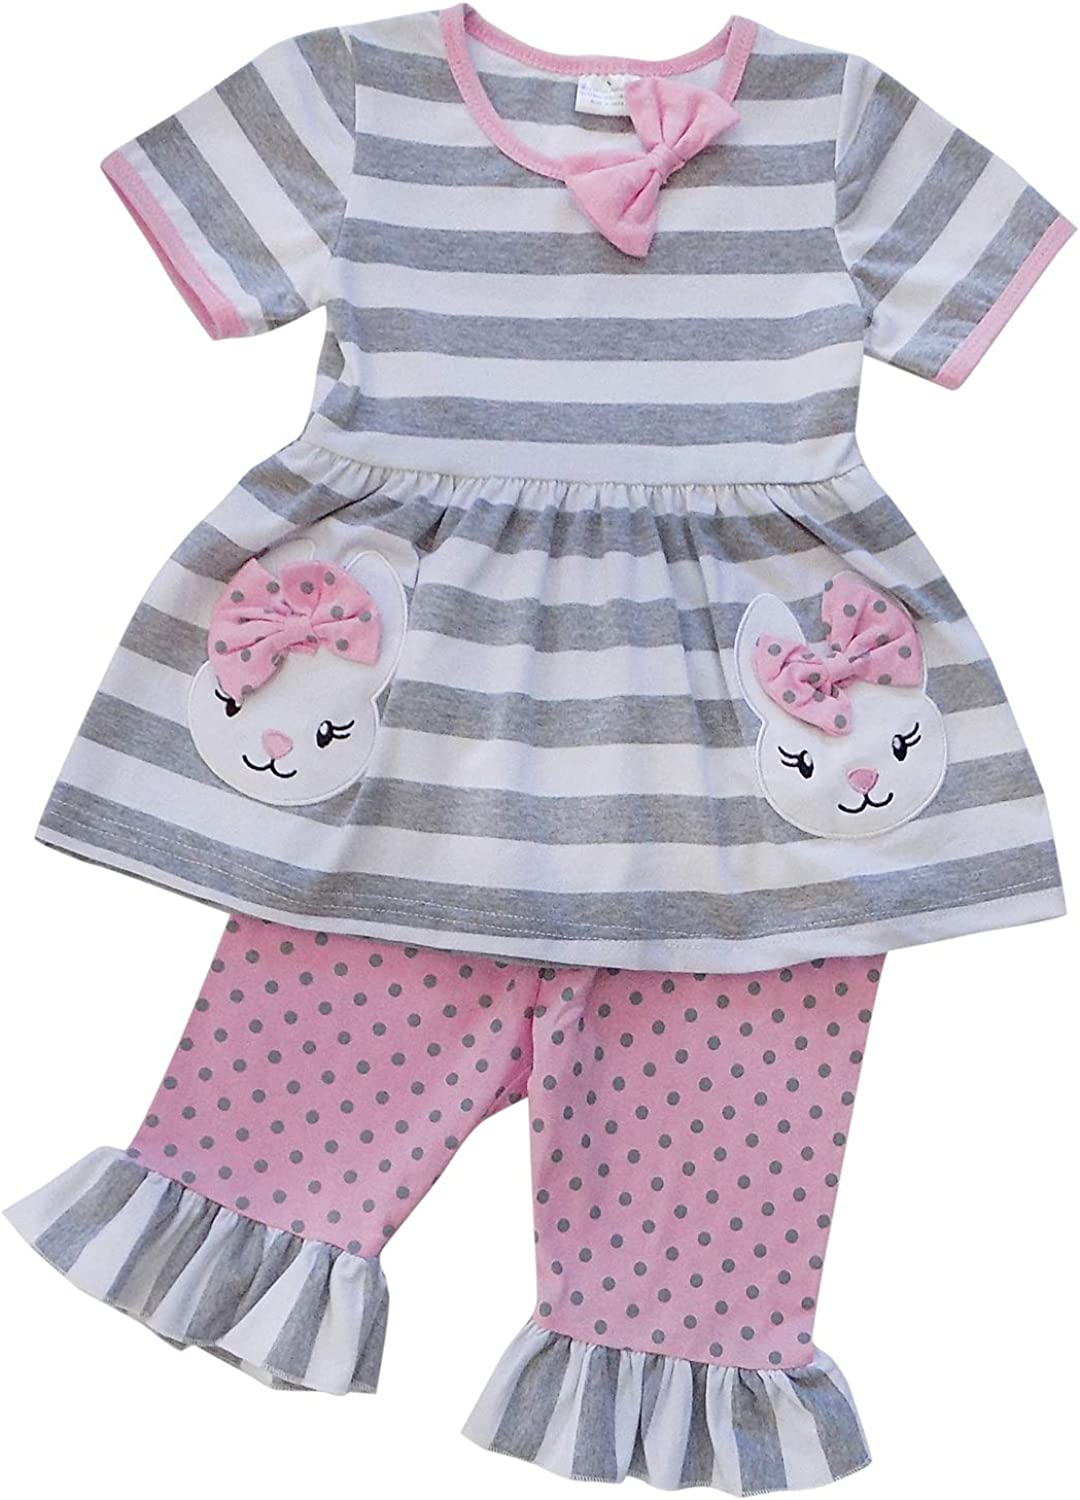 4T , One Cute Chick Skirt So Sydney Suspender /& Skirt 2 Piece Outfit M Girls Toddler Spring Easter Holiday Dress Up Boutique Outfit Clothes